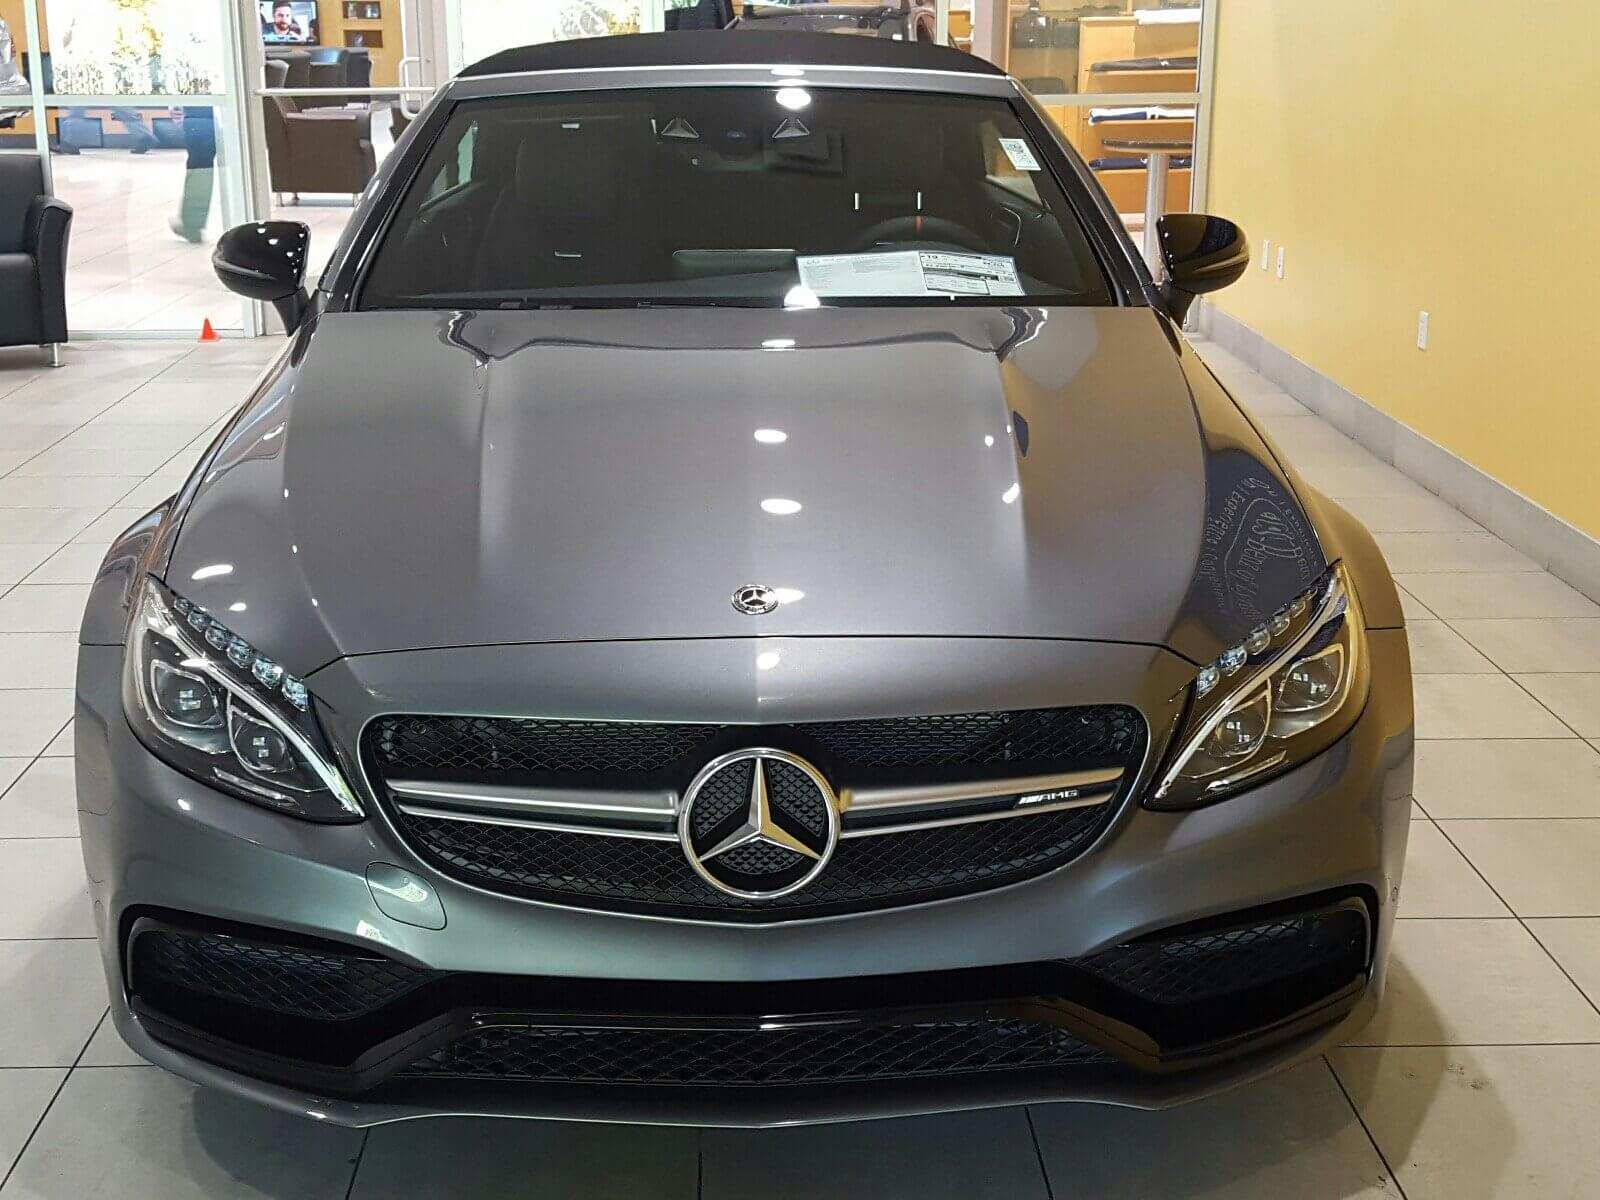 26 All New C Class Mercedes 2019 Release Specs And Review Review for C Class Mercedes 2019 Release Specs And Review